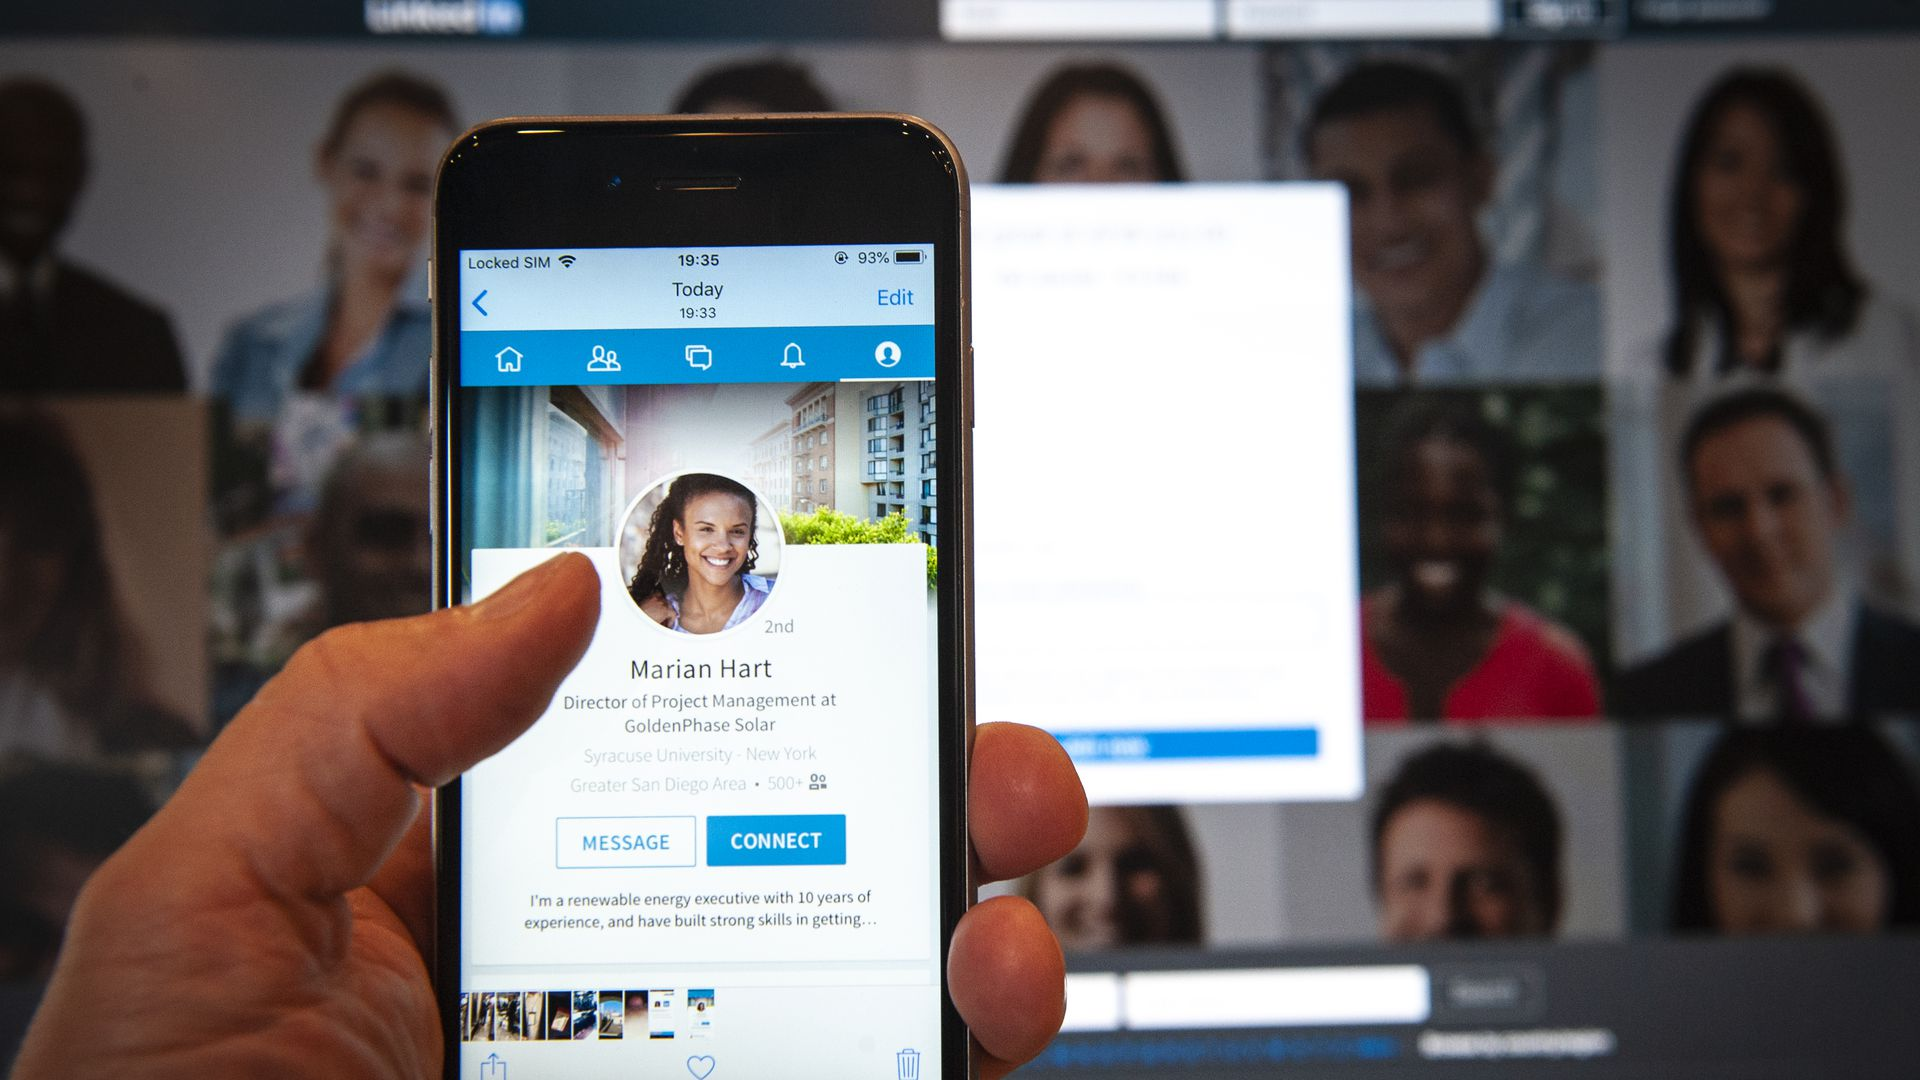 How to Use LinkedIn Stories to Promote Your Business